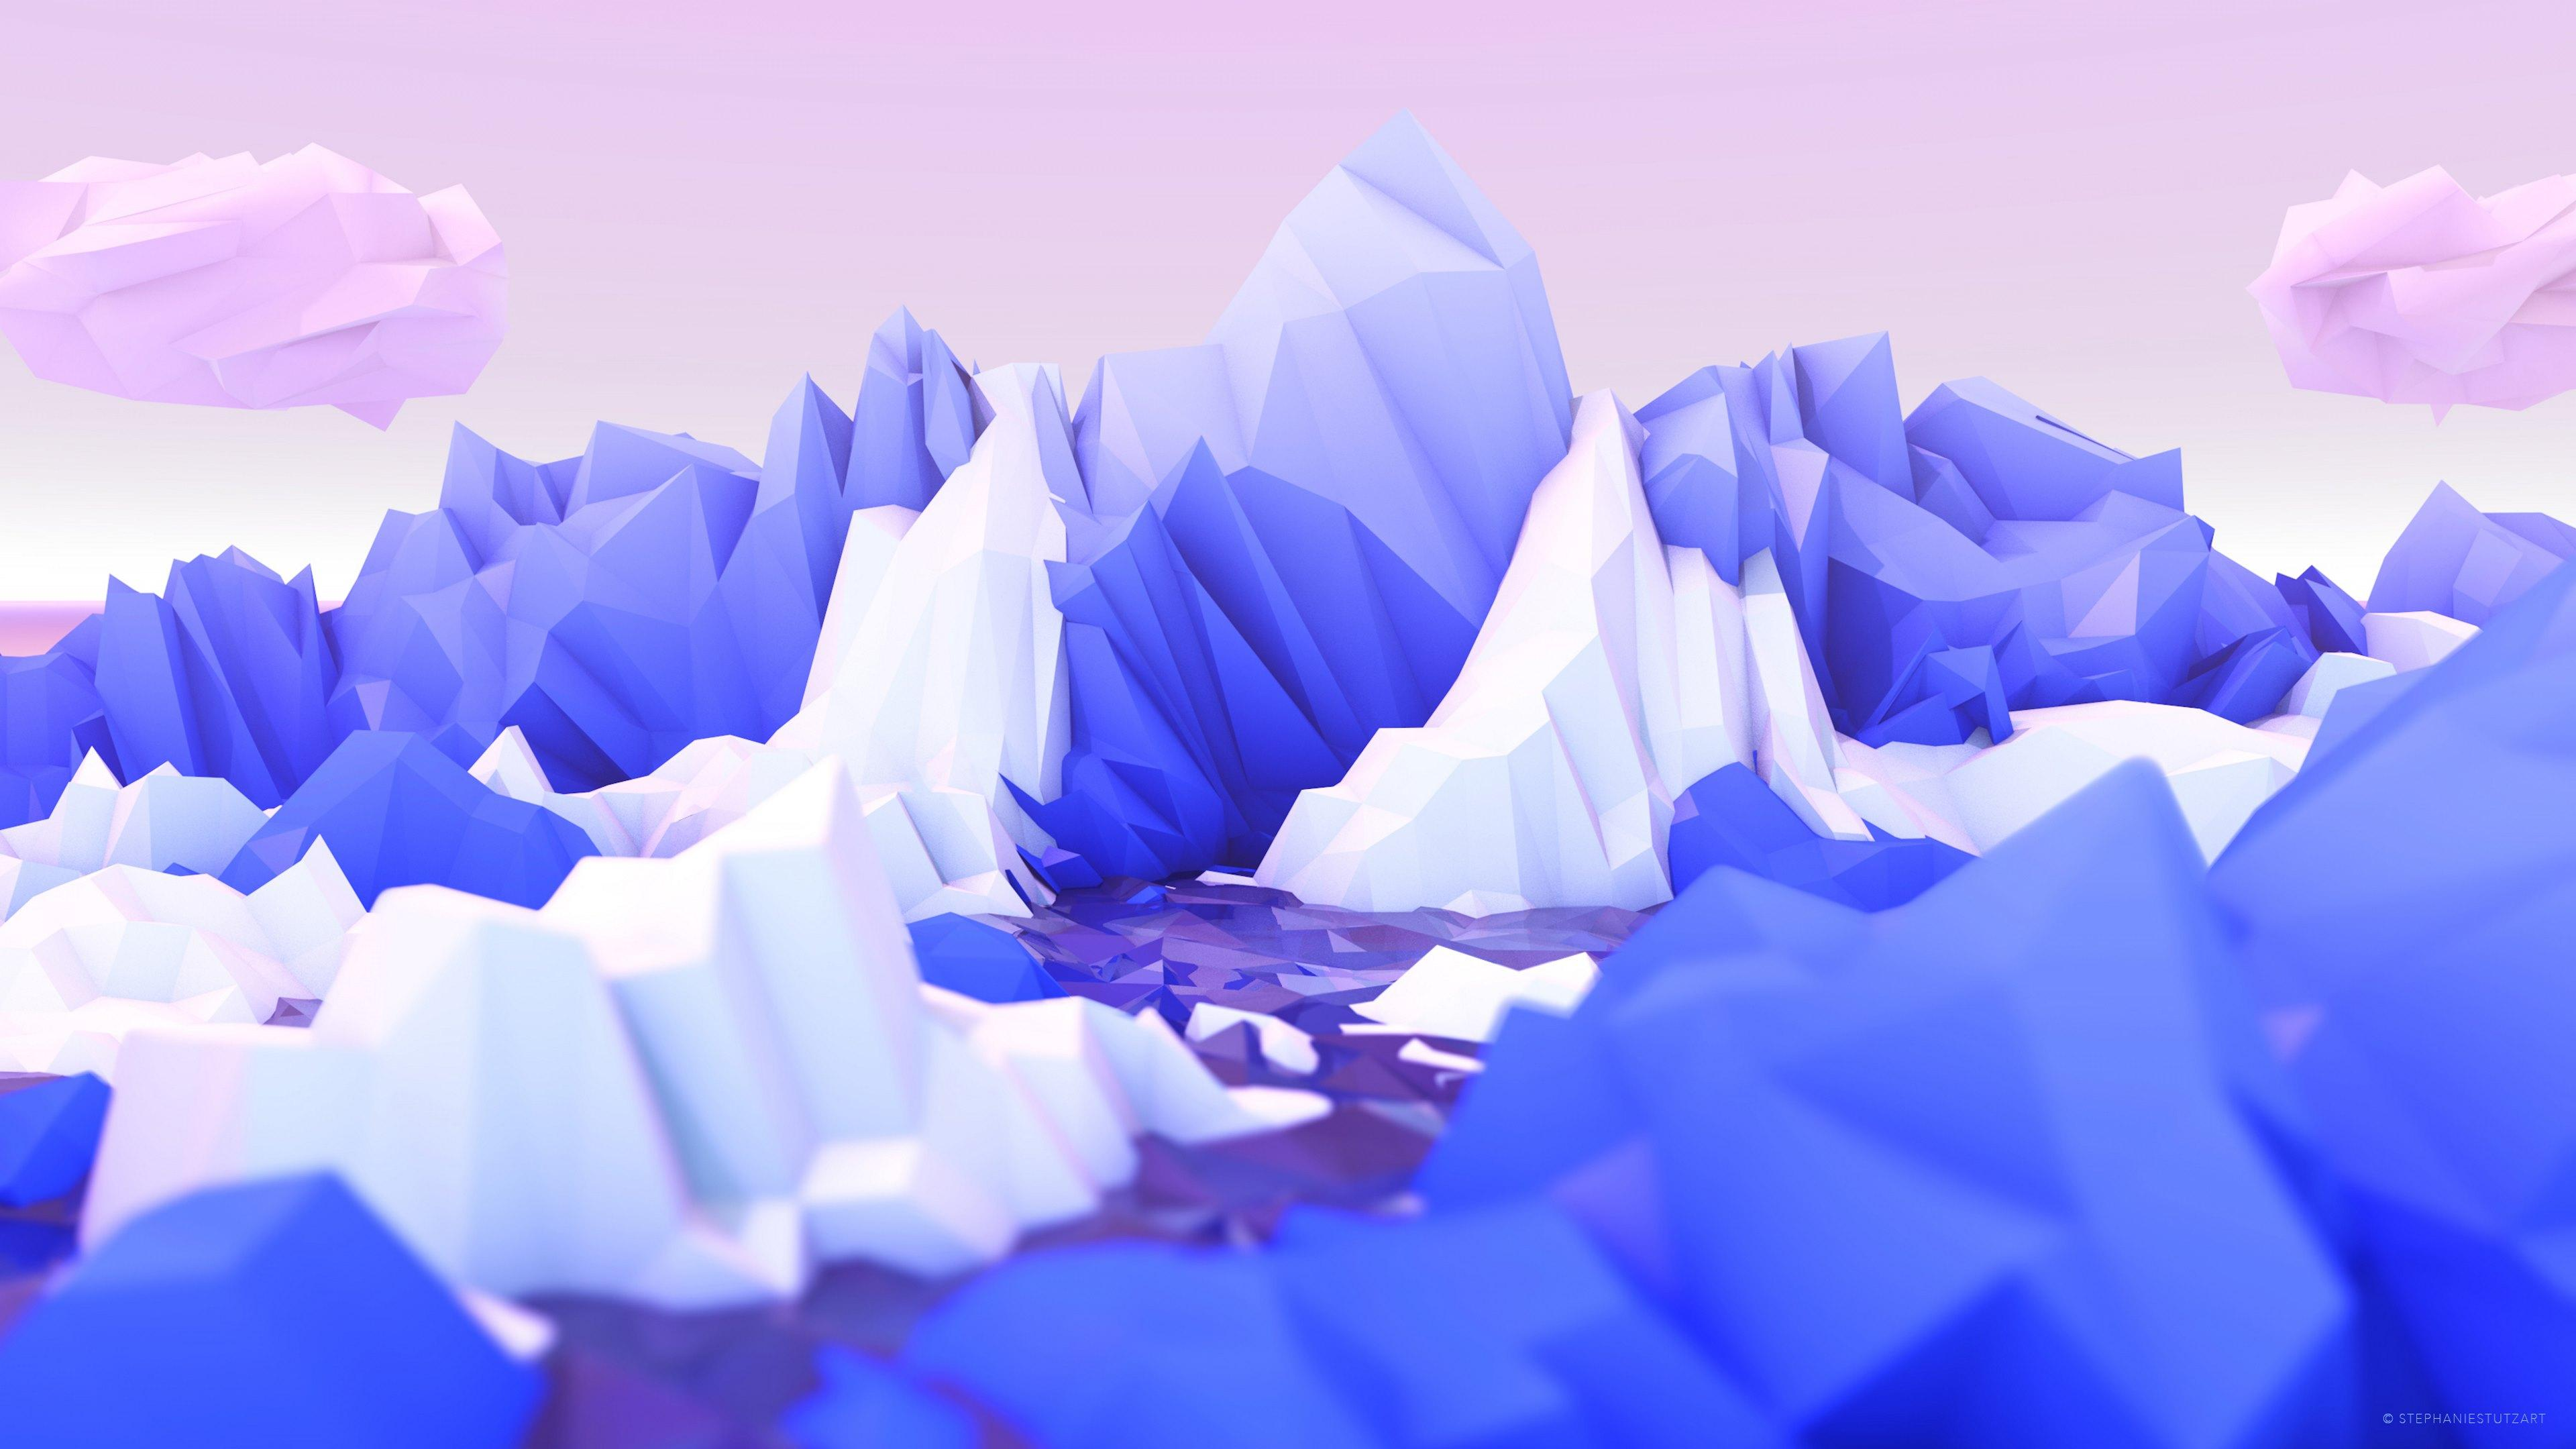 static/images/backgrounds/mountains-poly.jpg